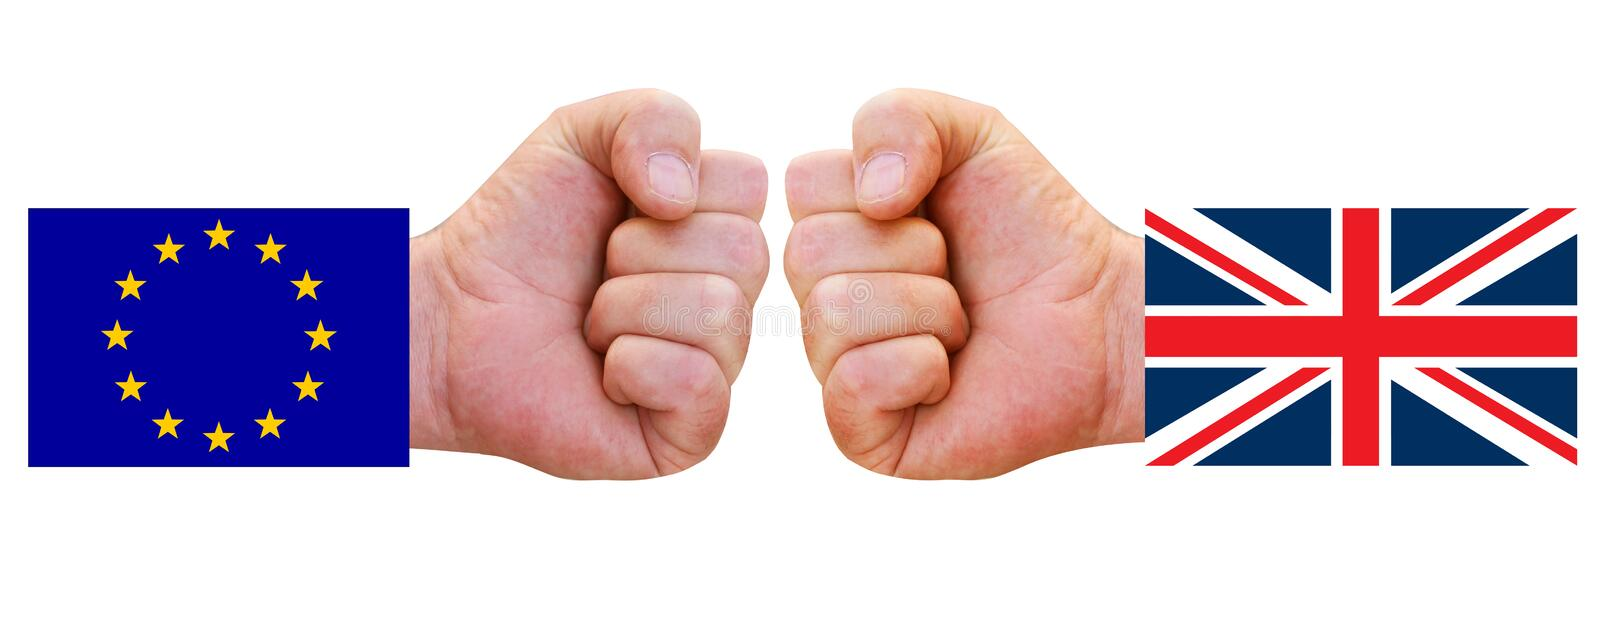 Flags of UK and EU with clenched fists punching out against each other. Brexit concept. Symbolizing conflict between European unio. N and United Kingdom stock photos